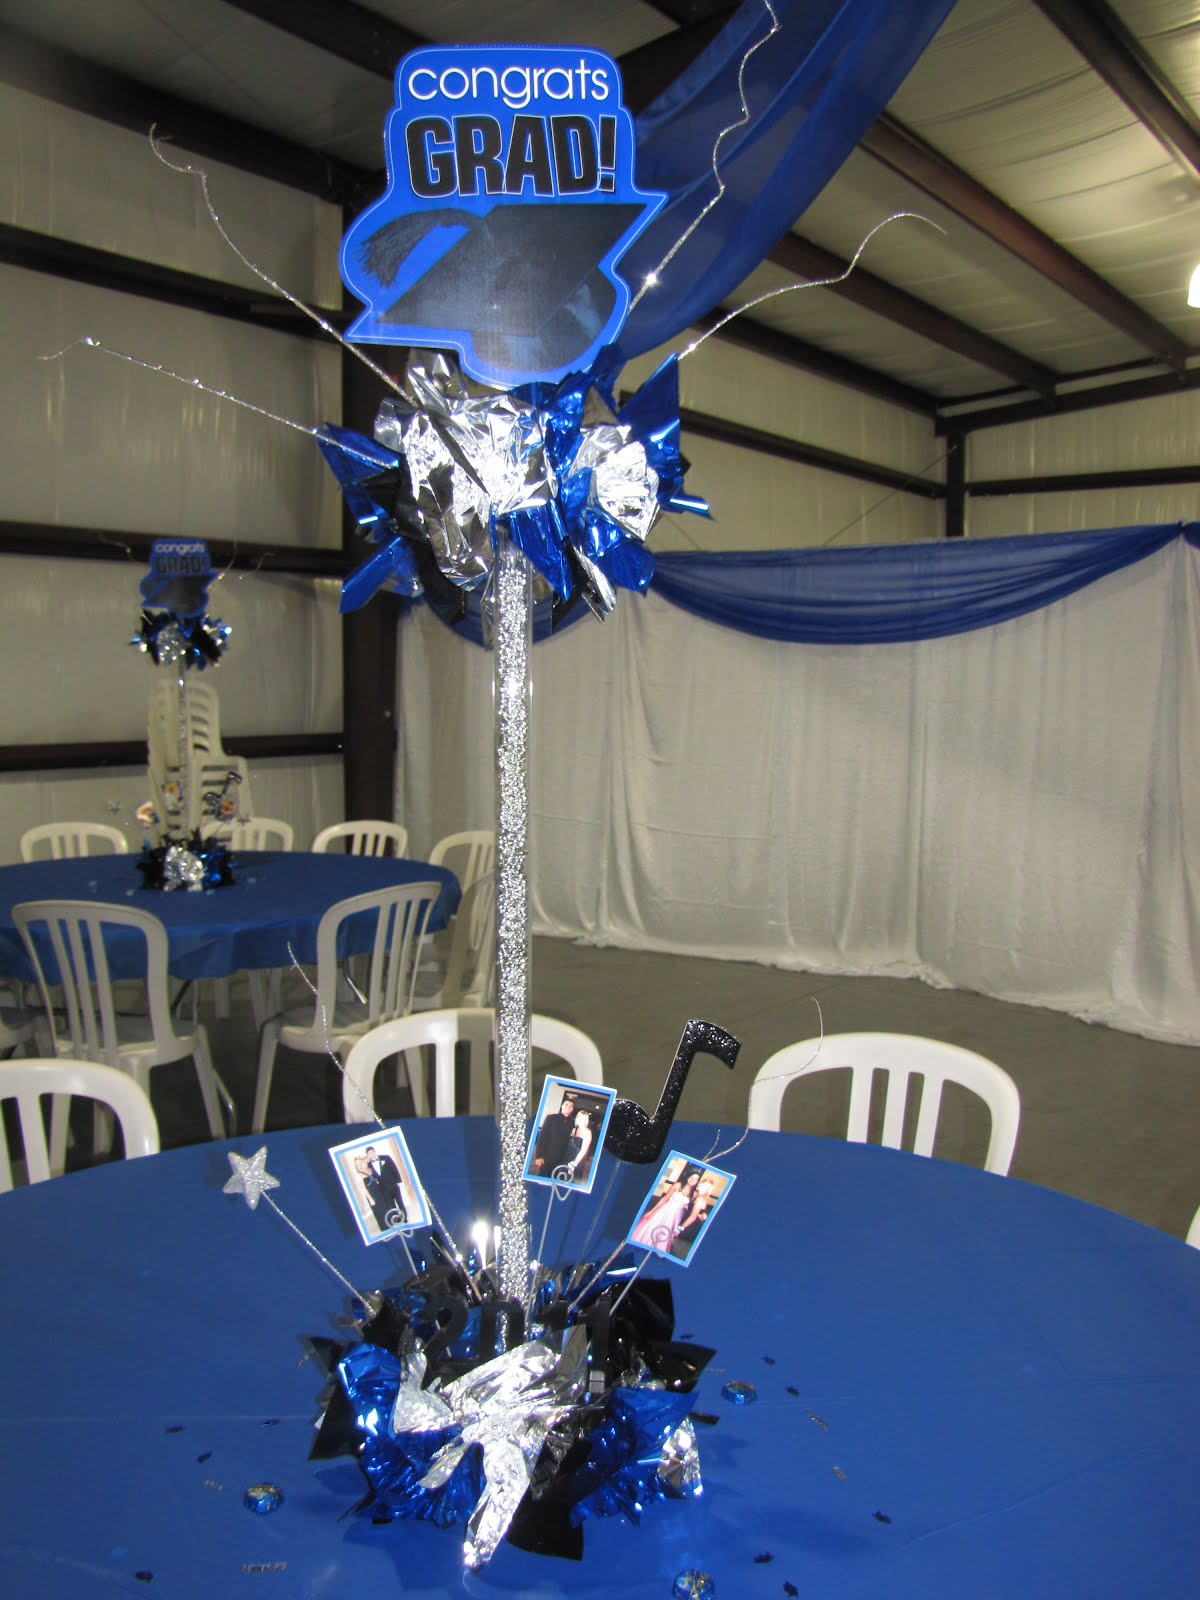 Party people event decorating company graduation decor for Balloon decoration ideas for graduation